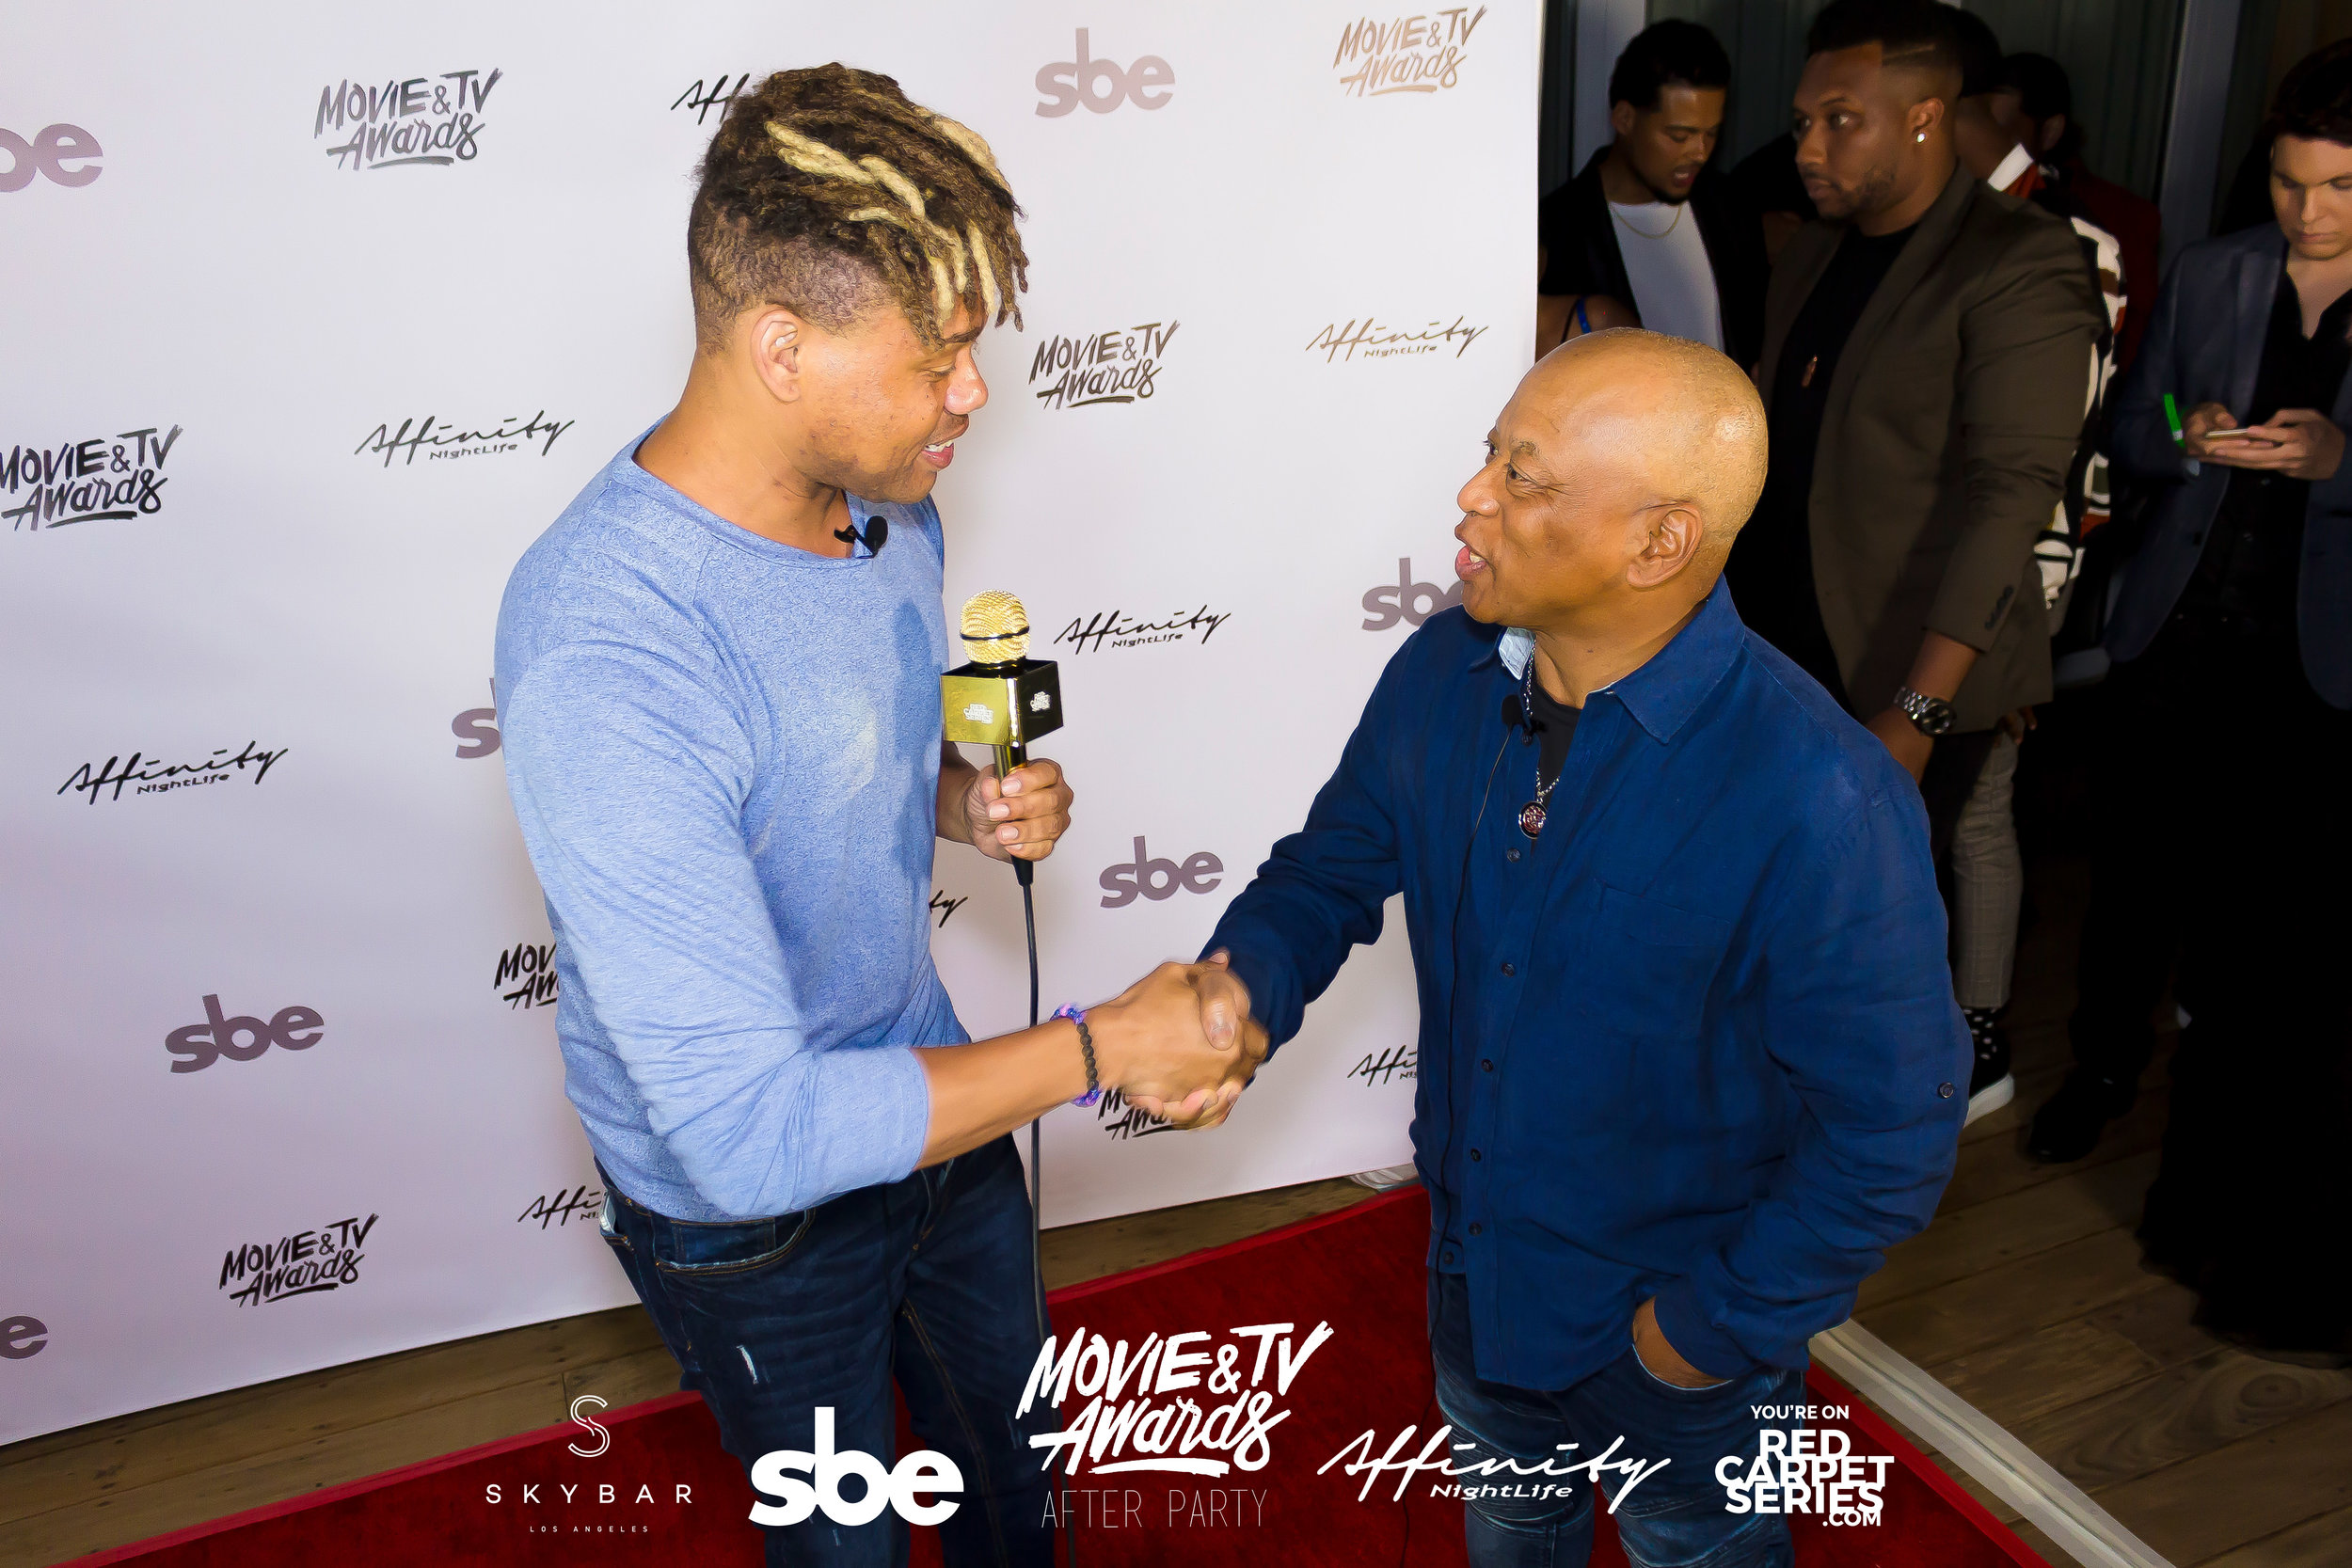 Affinity Nightlife MTV Movie & TV Awards After Party - Skybar at Mondrian - 06-15-19 - Vol. 1_42.jpg